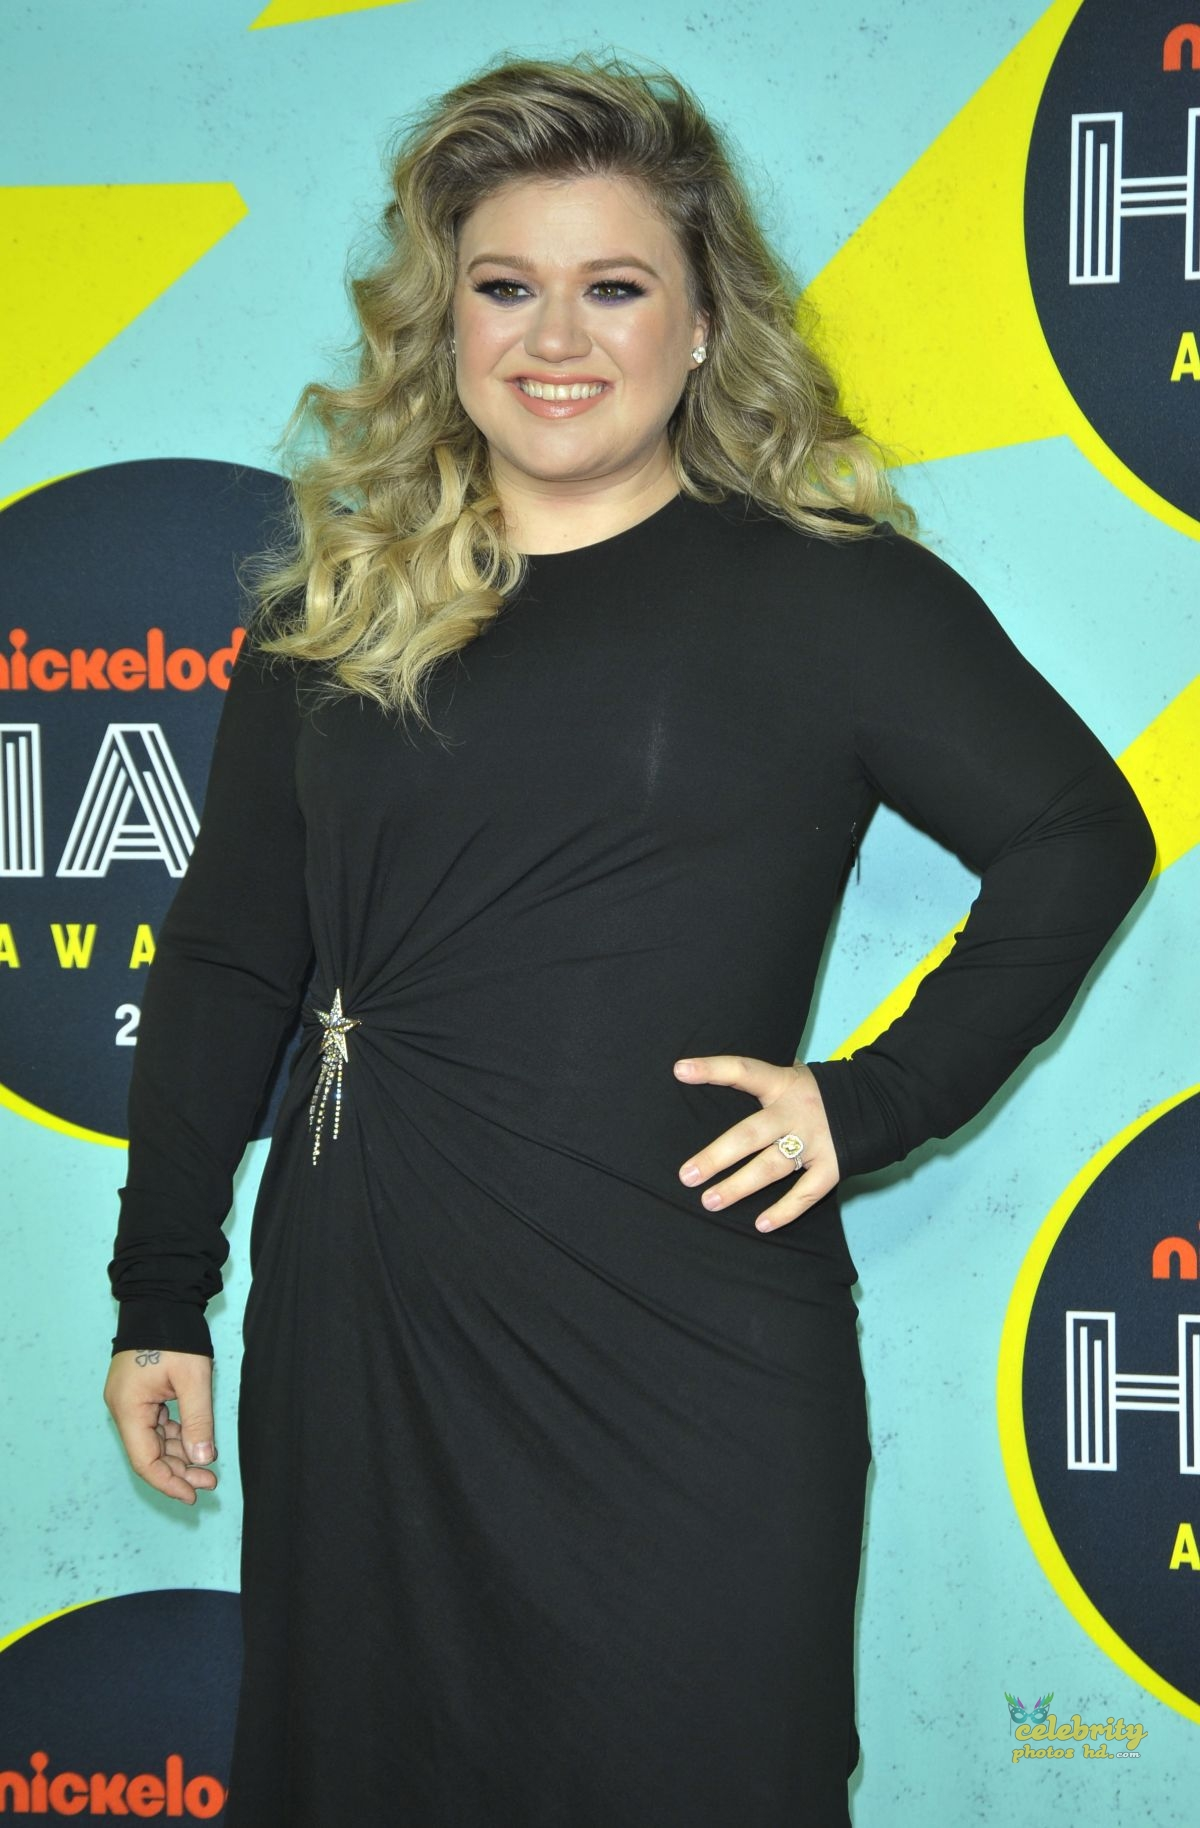 Hot and Cute Girl Kelly Clarkson (6)